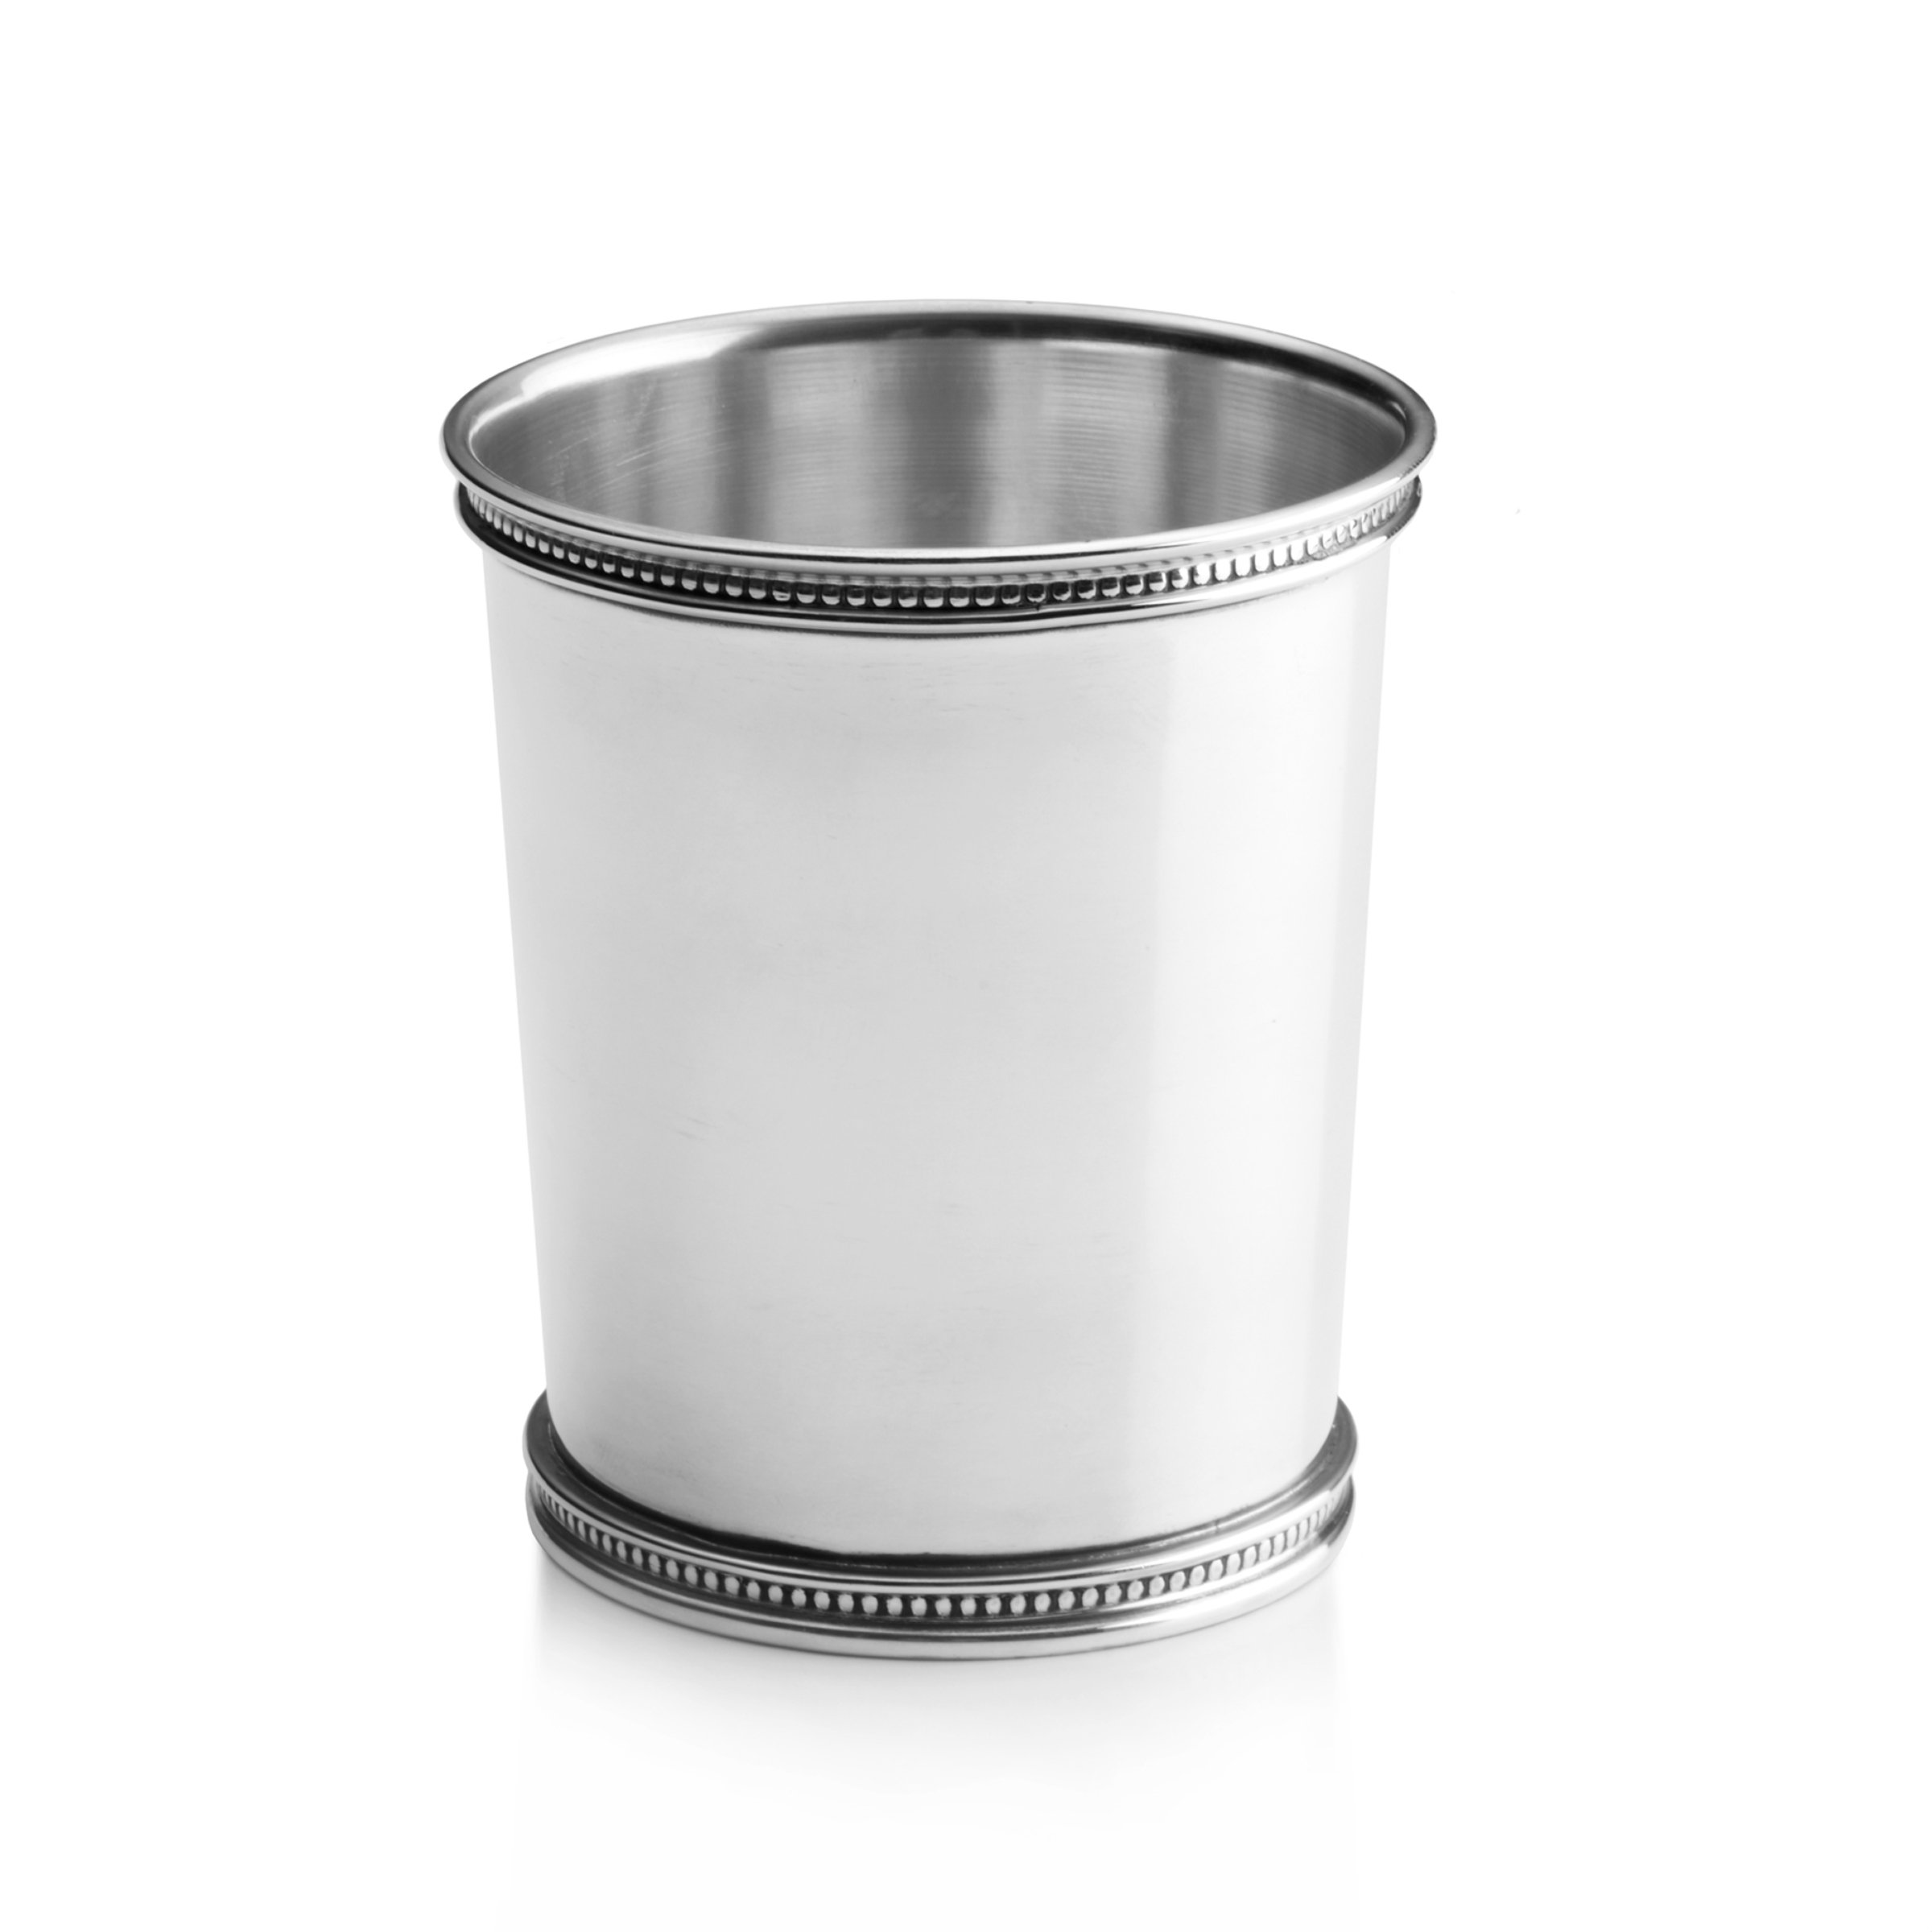 Towle Silver Plated Mint Julep Cup, 8-Ounce by Towle